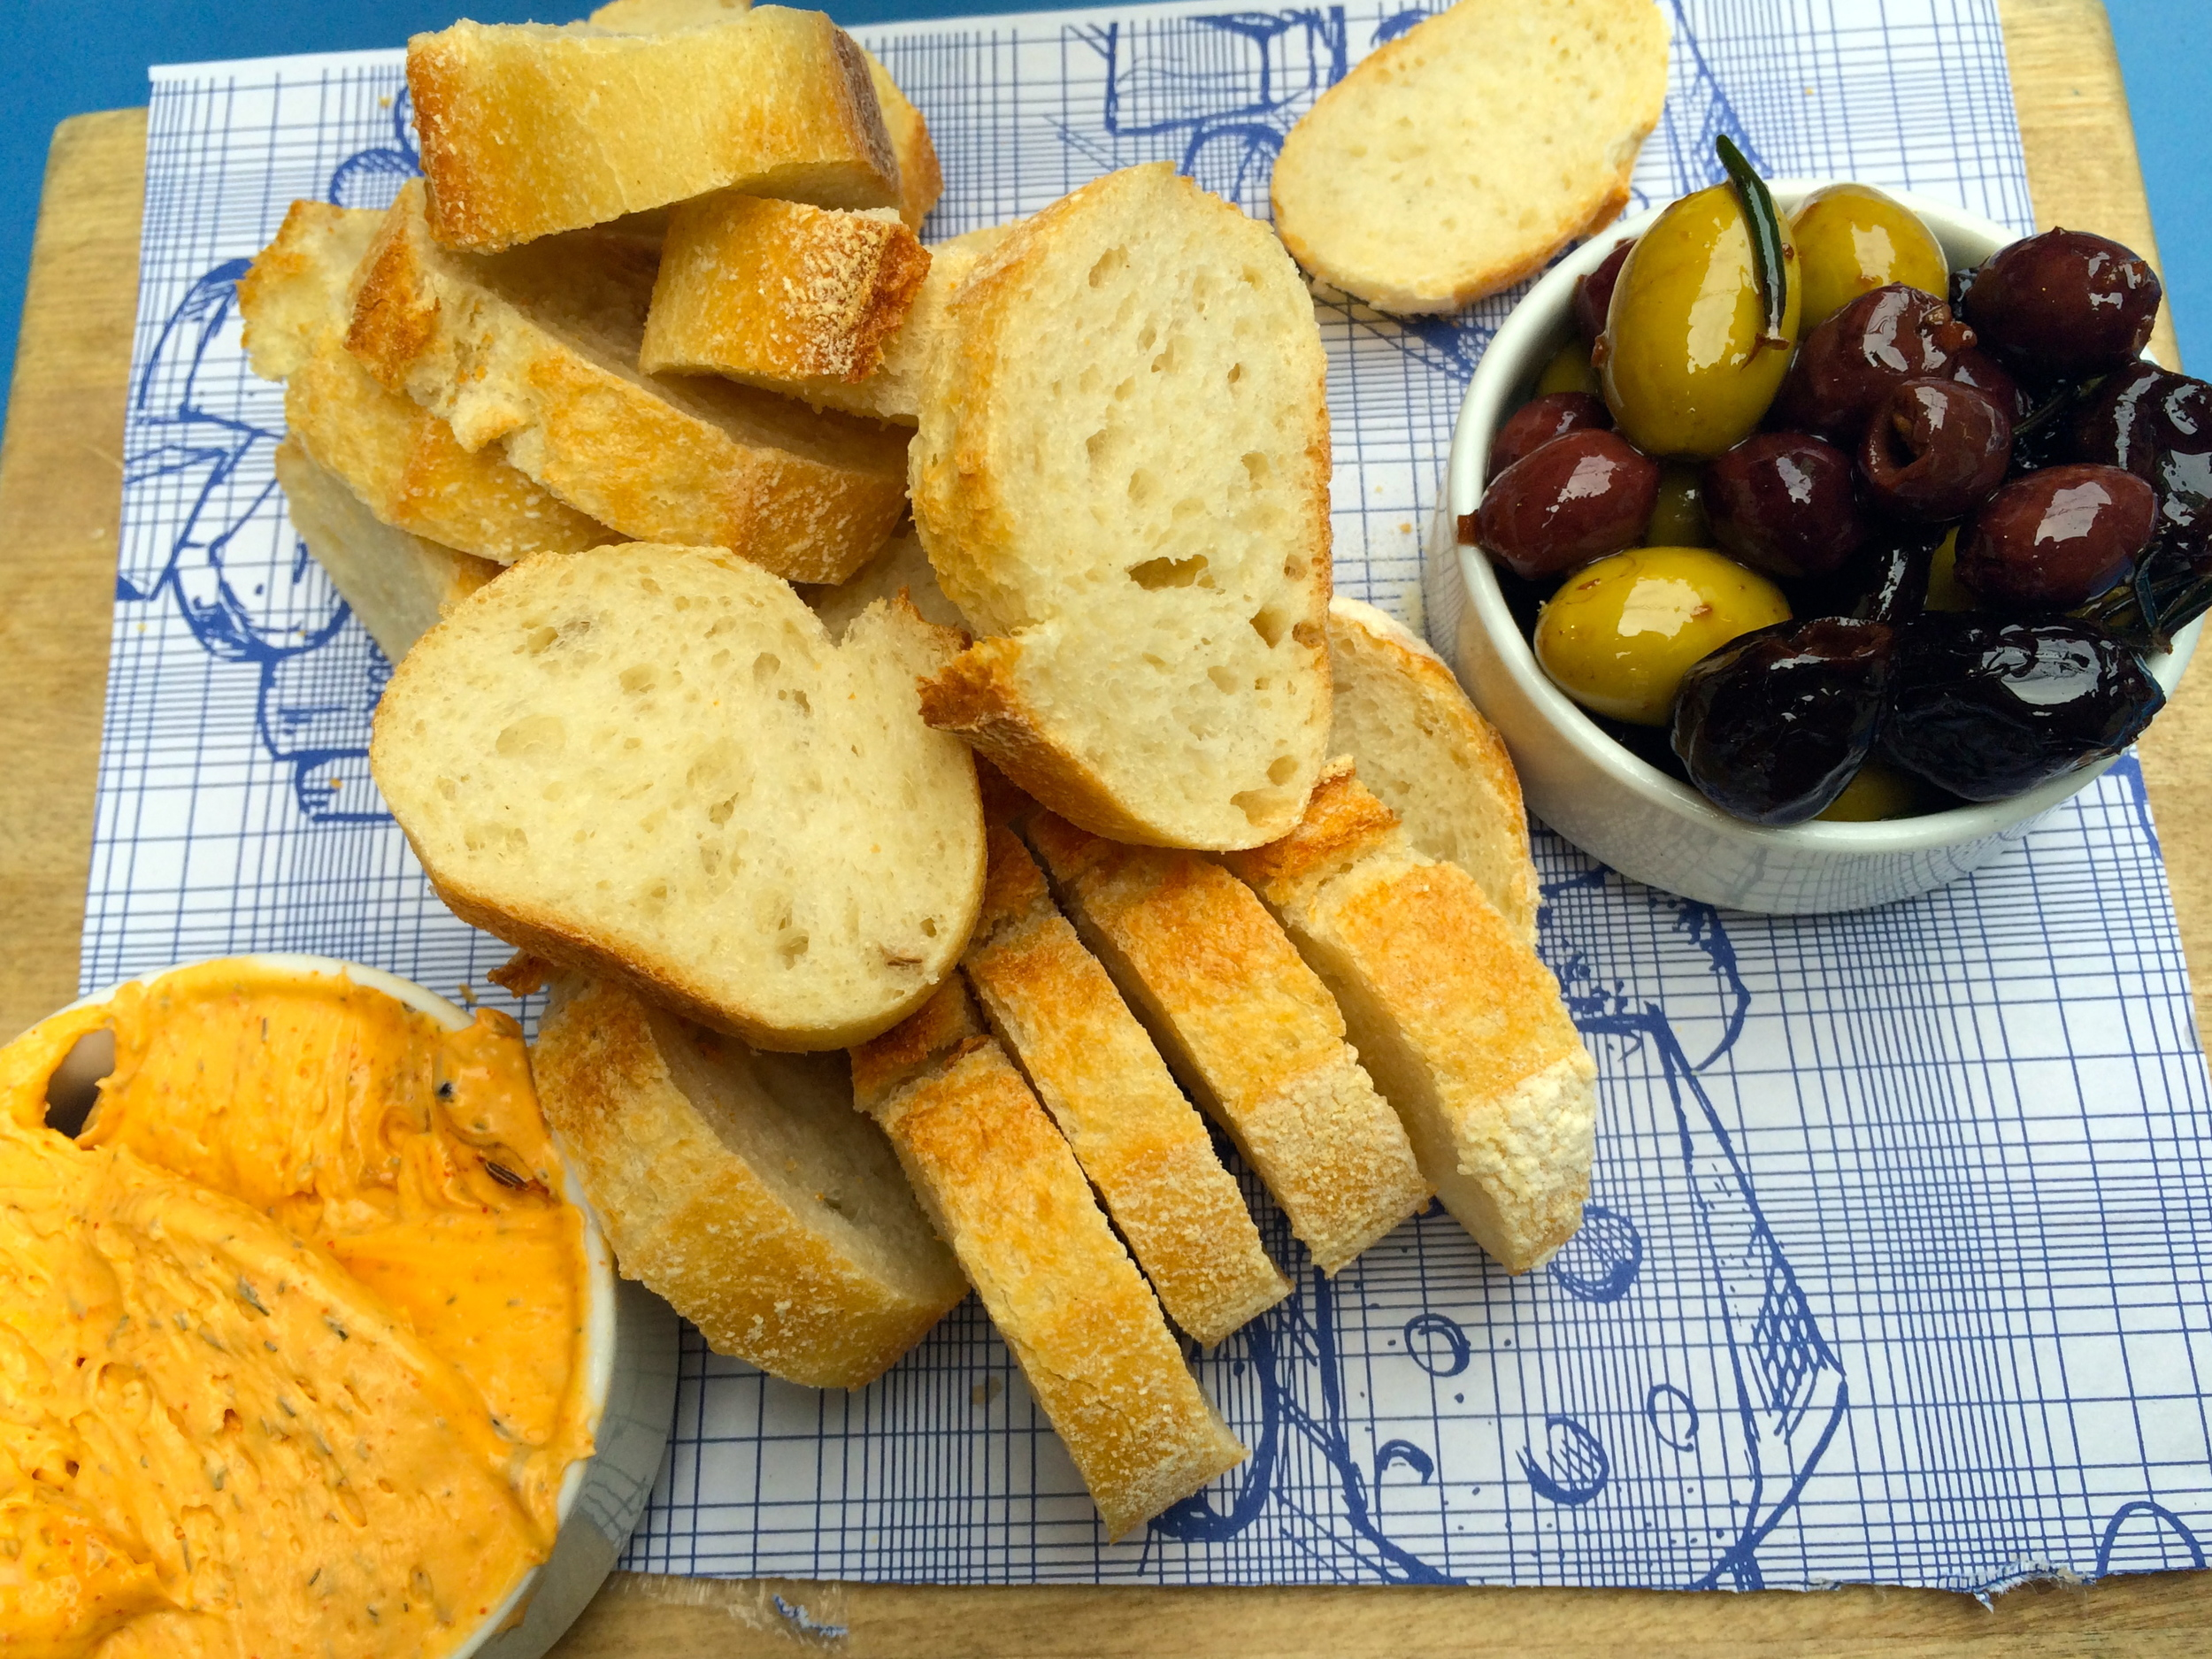 Olives, baguette and caviar cheese, a specialty at Mr. Marcel Gourmet Market.